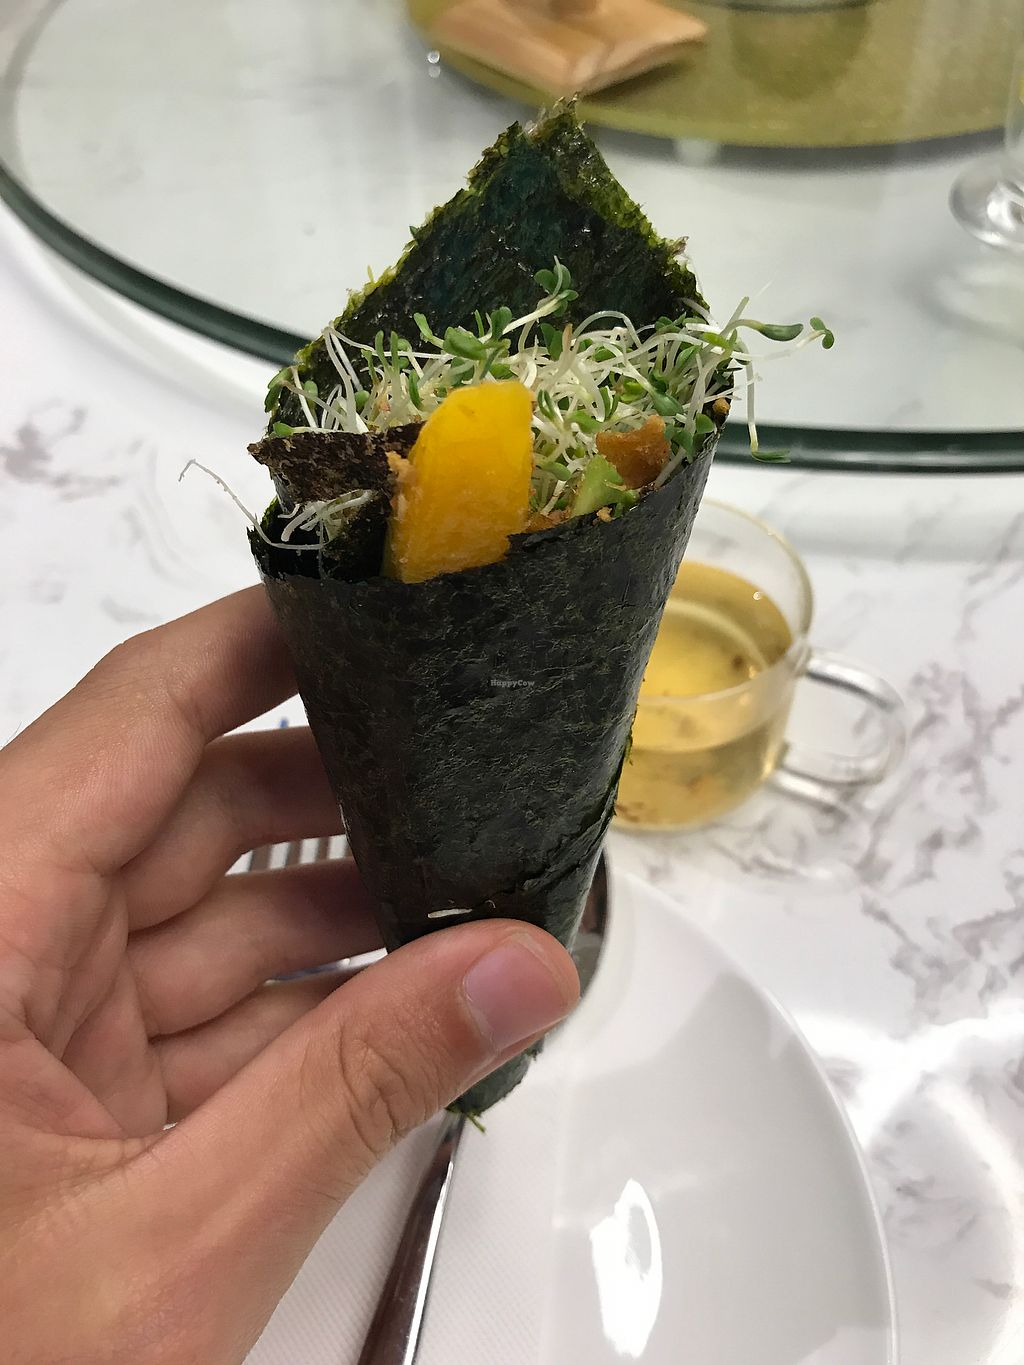 """Photo of Leisurely Veggie  by <a href=""""/members/profile/oskeewowwow"""">oskeewowwow</a> <br/>veganized hand roll <br/> June 25, 2017  - <a href='/contact/abuse/image/83243/273199'>Report</a>"""